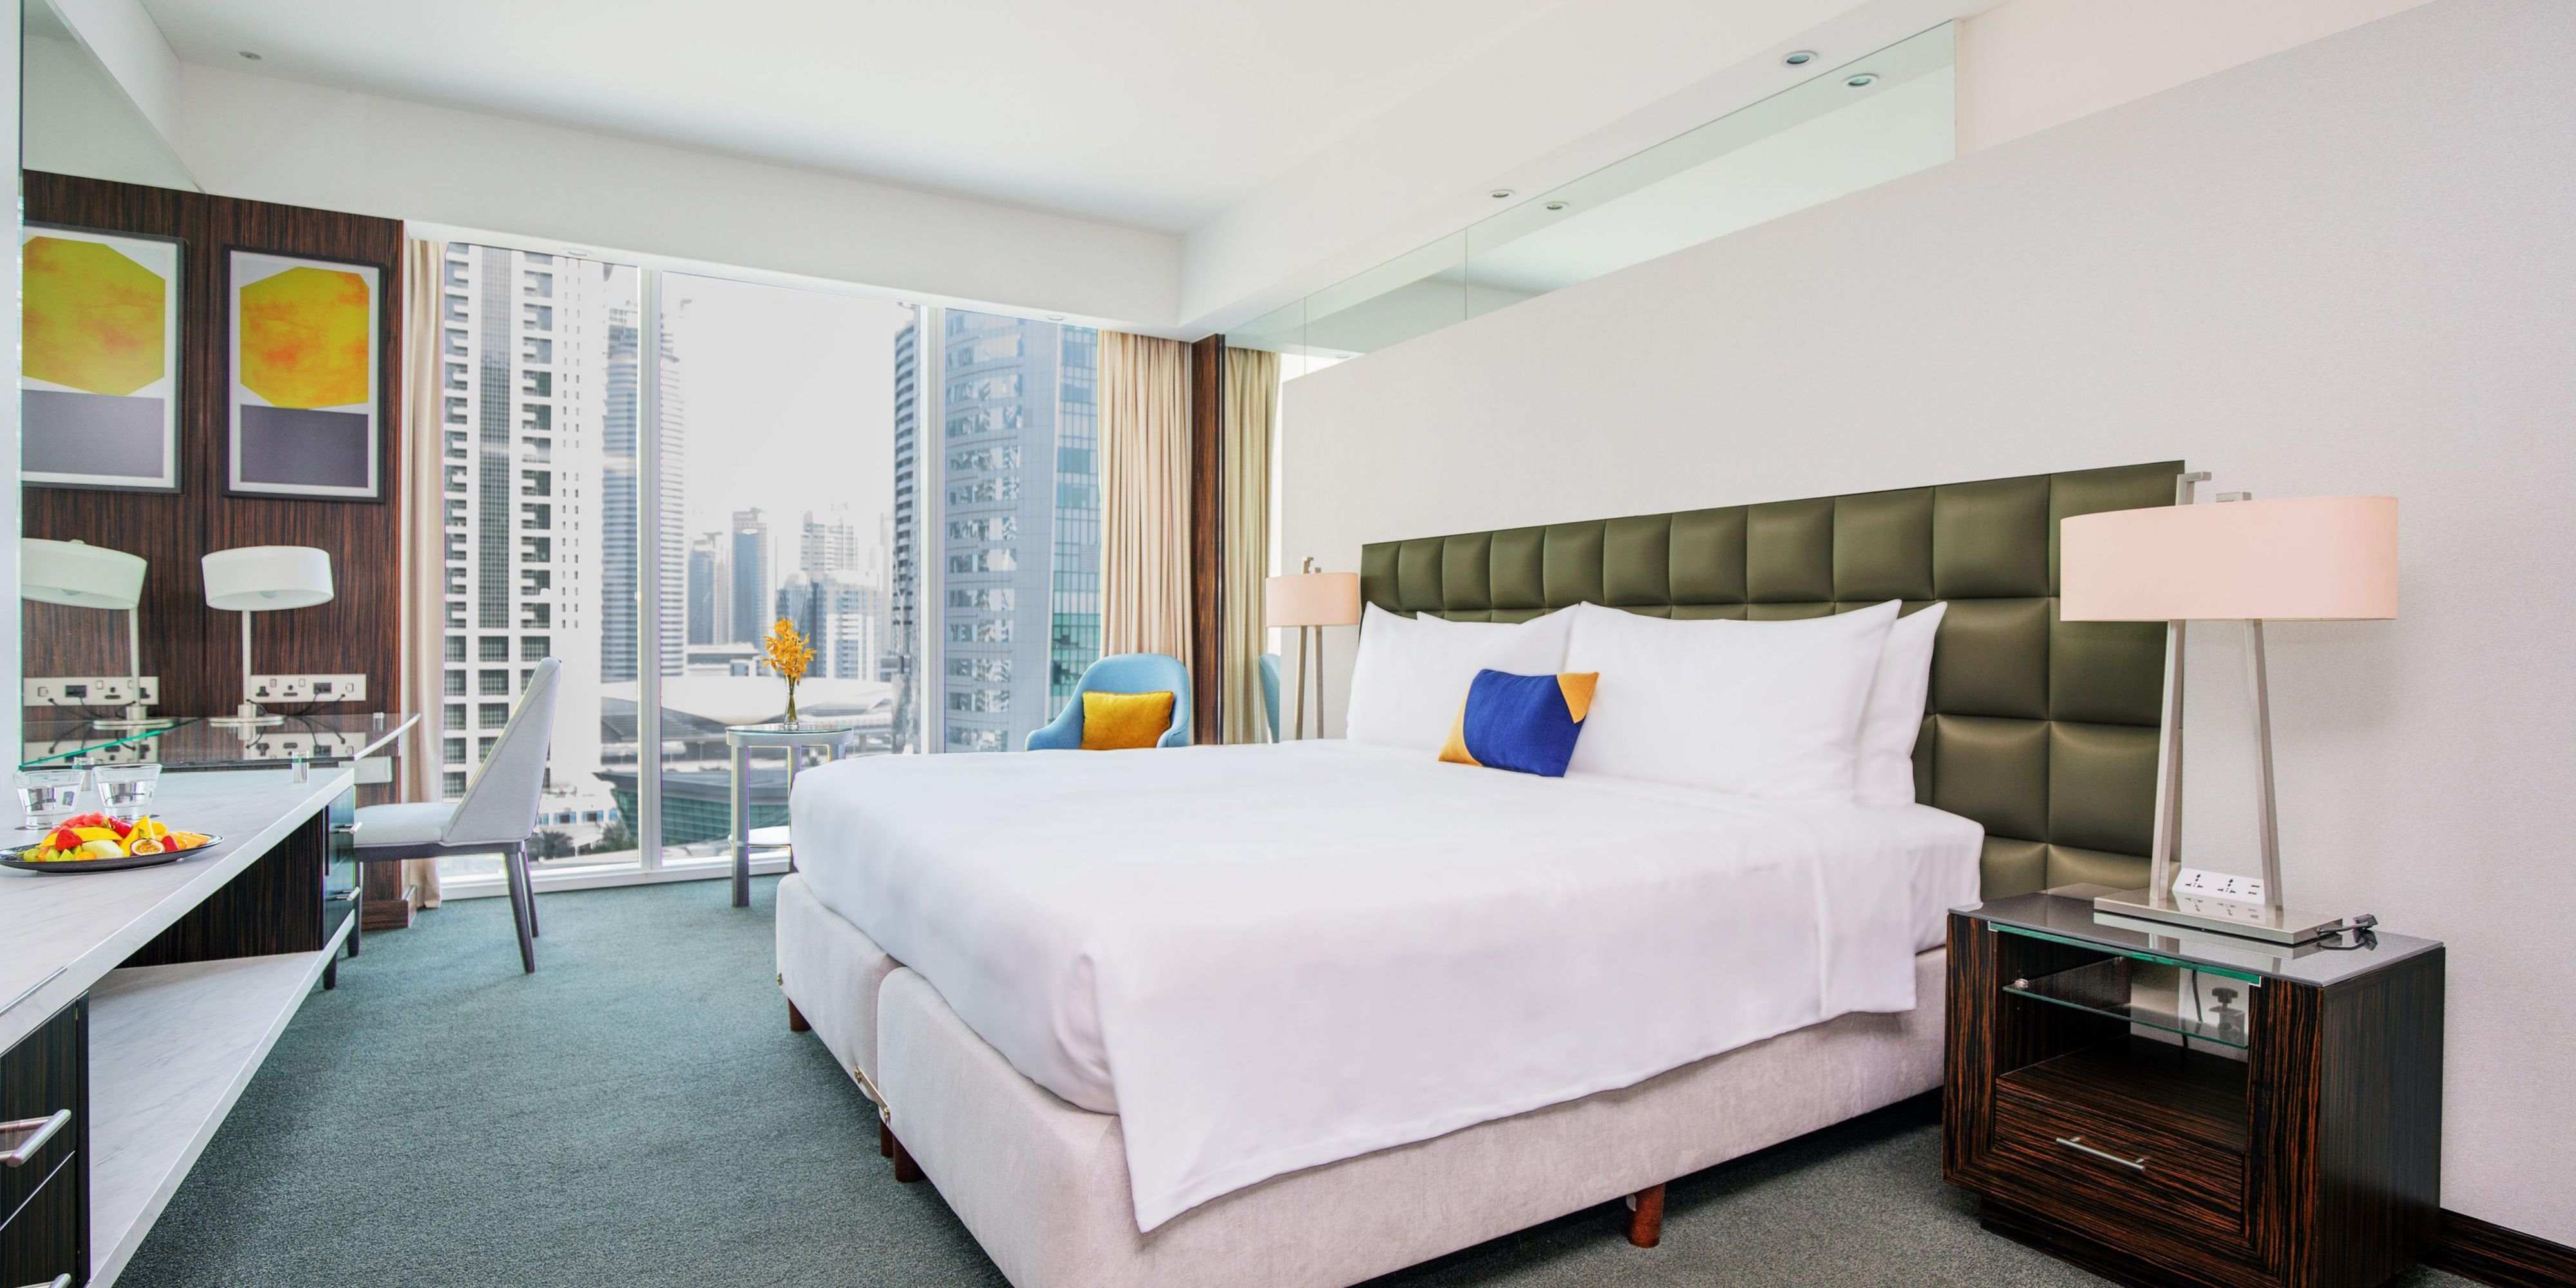 Our welcoming king size bed in the Deluxe room